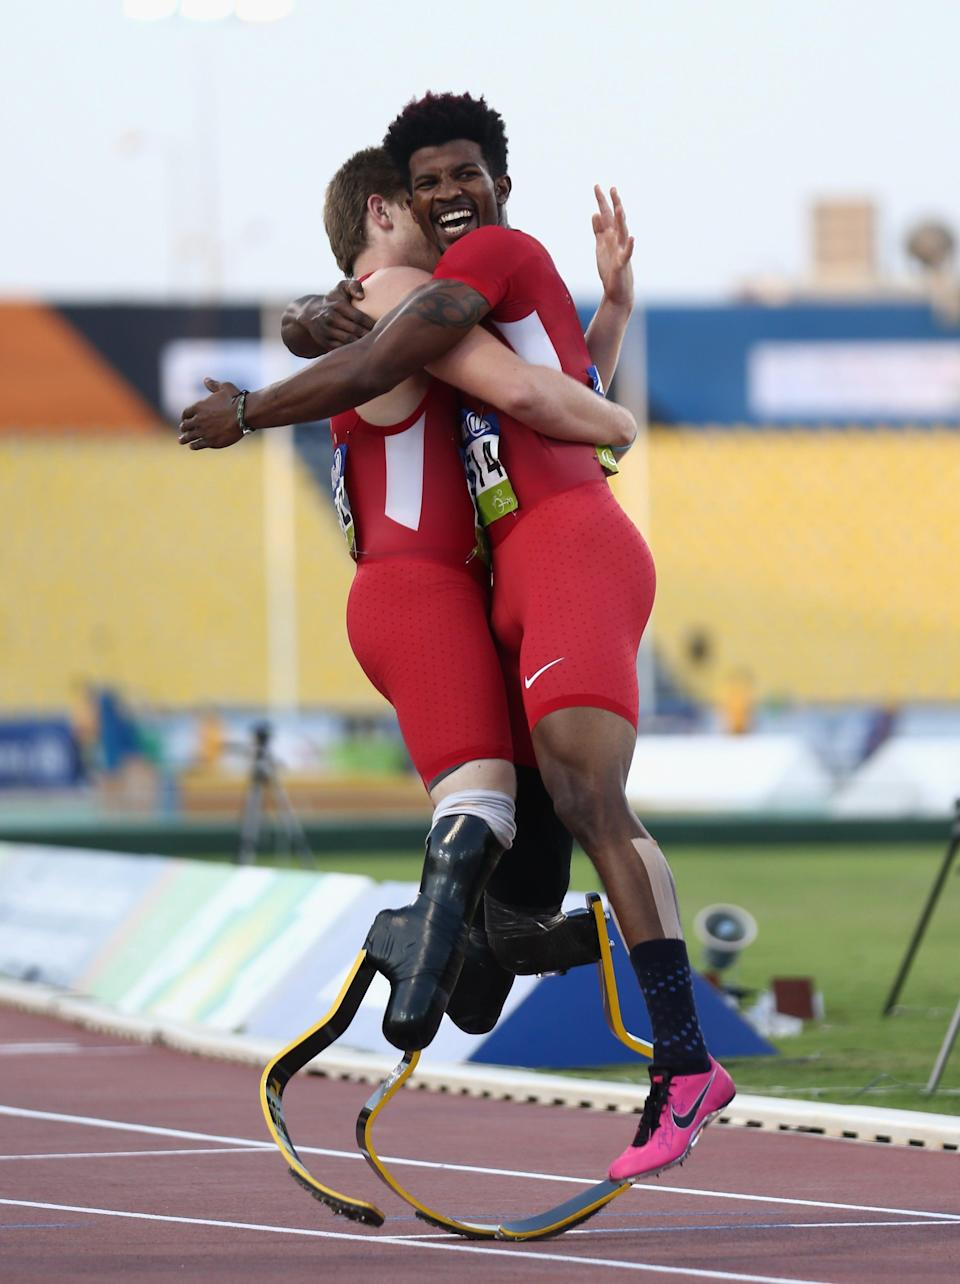 Richard Browne, right, of the United States celebrates winning the men's 200m T44 final with teammate Hunter Woodhall during the IPC Athletics World Championships in 2015 in Doha, Qatar.